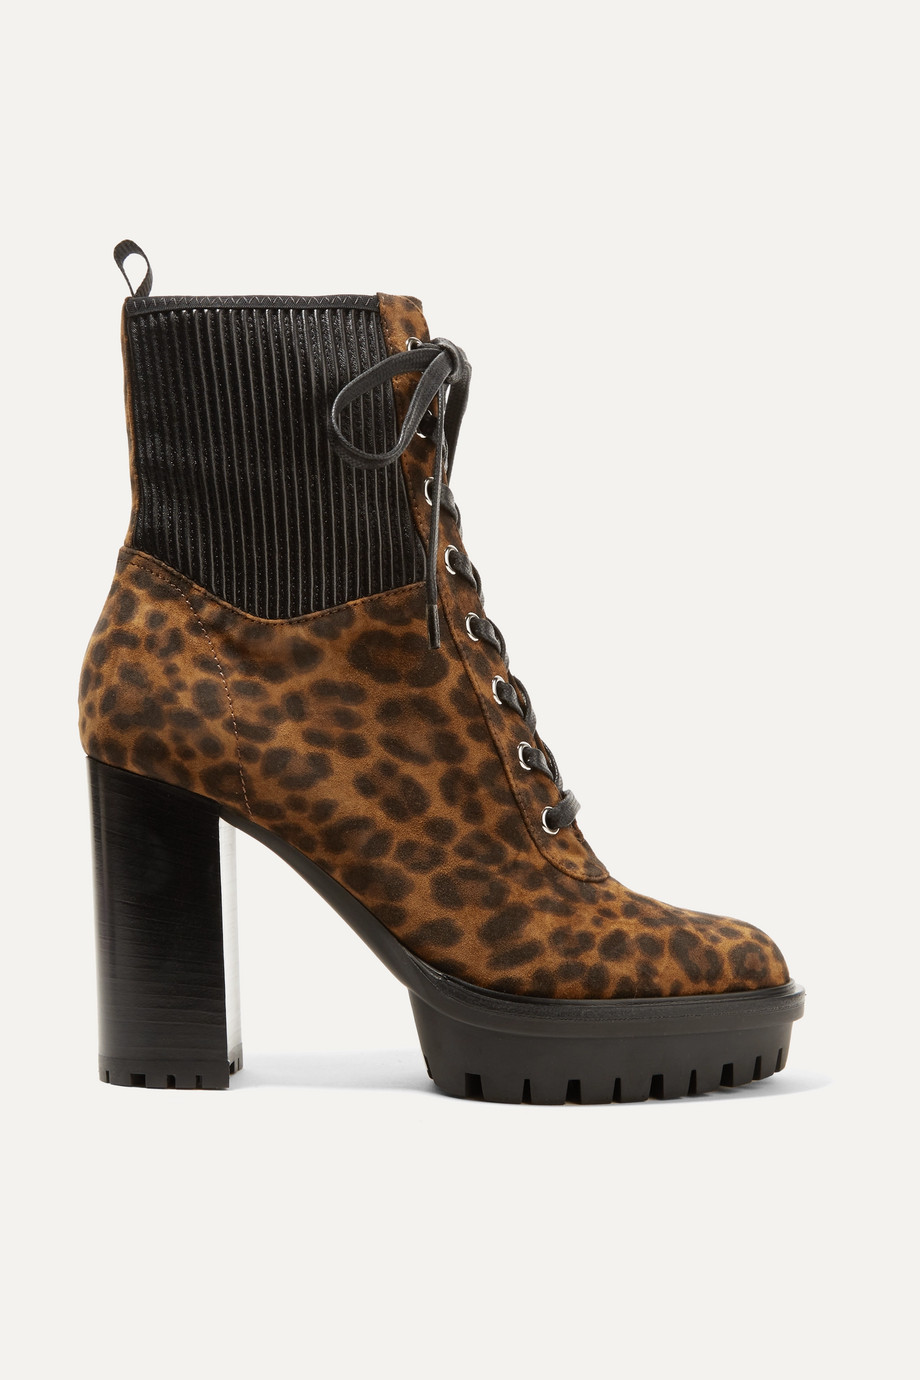 Gianvito Rossi 90 leather-paneled leopard-print suede ankle boots